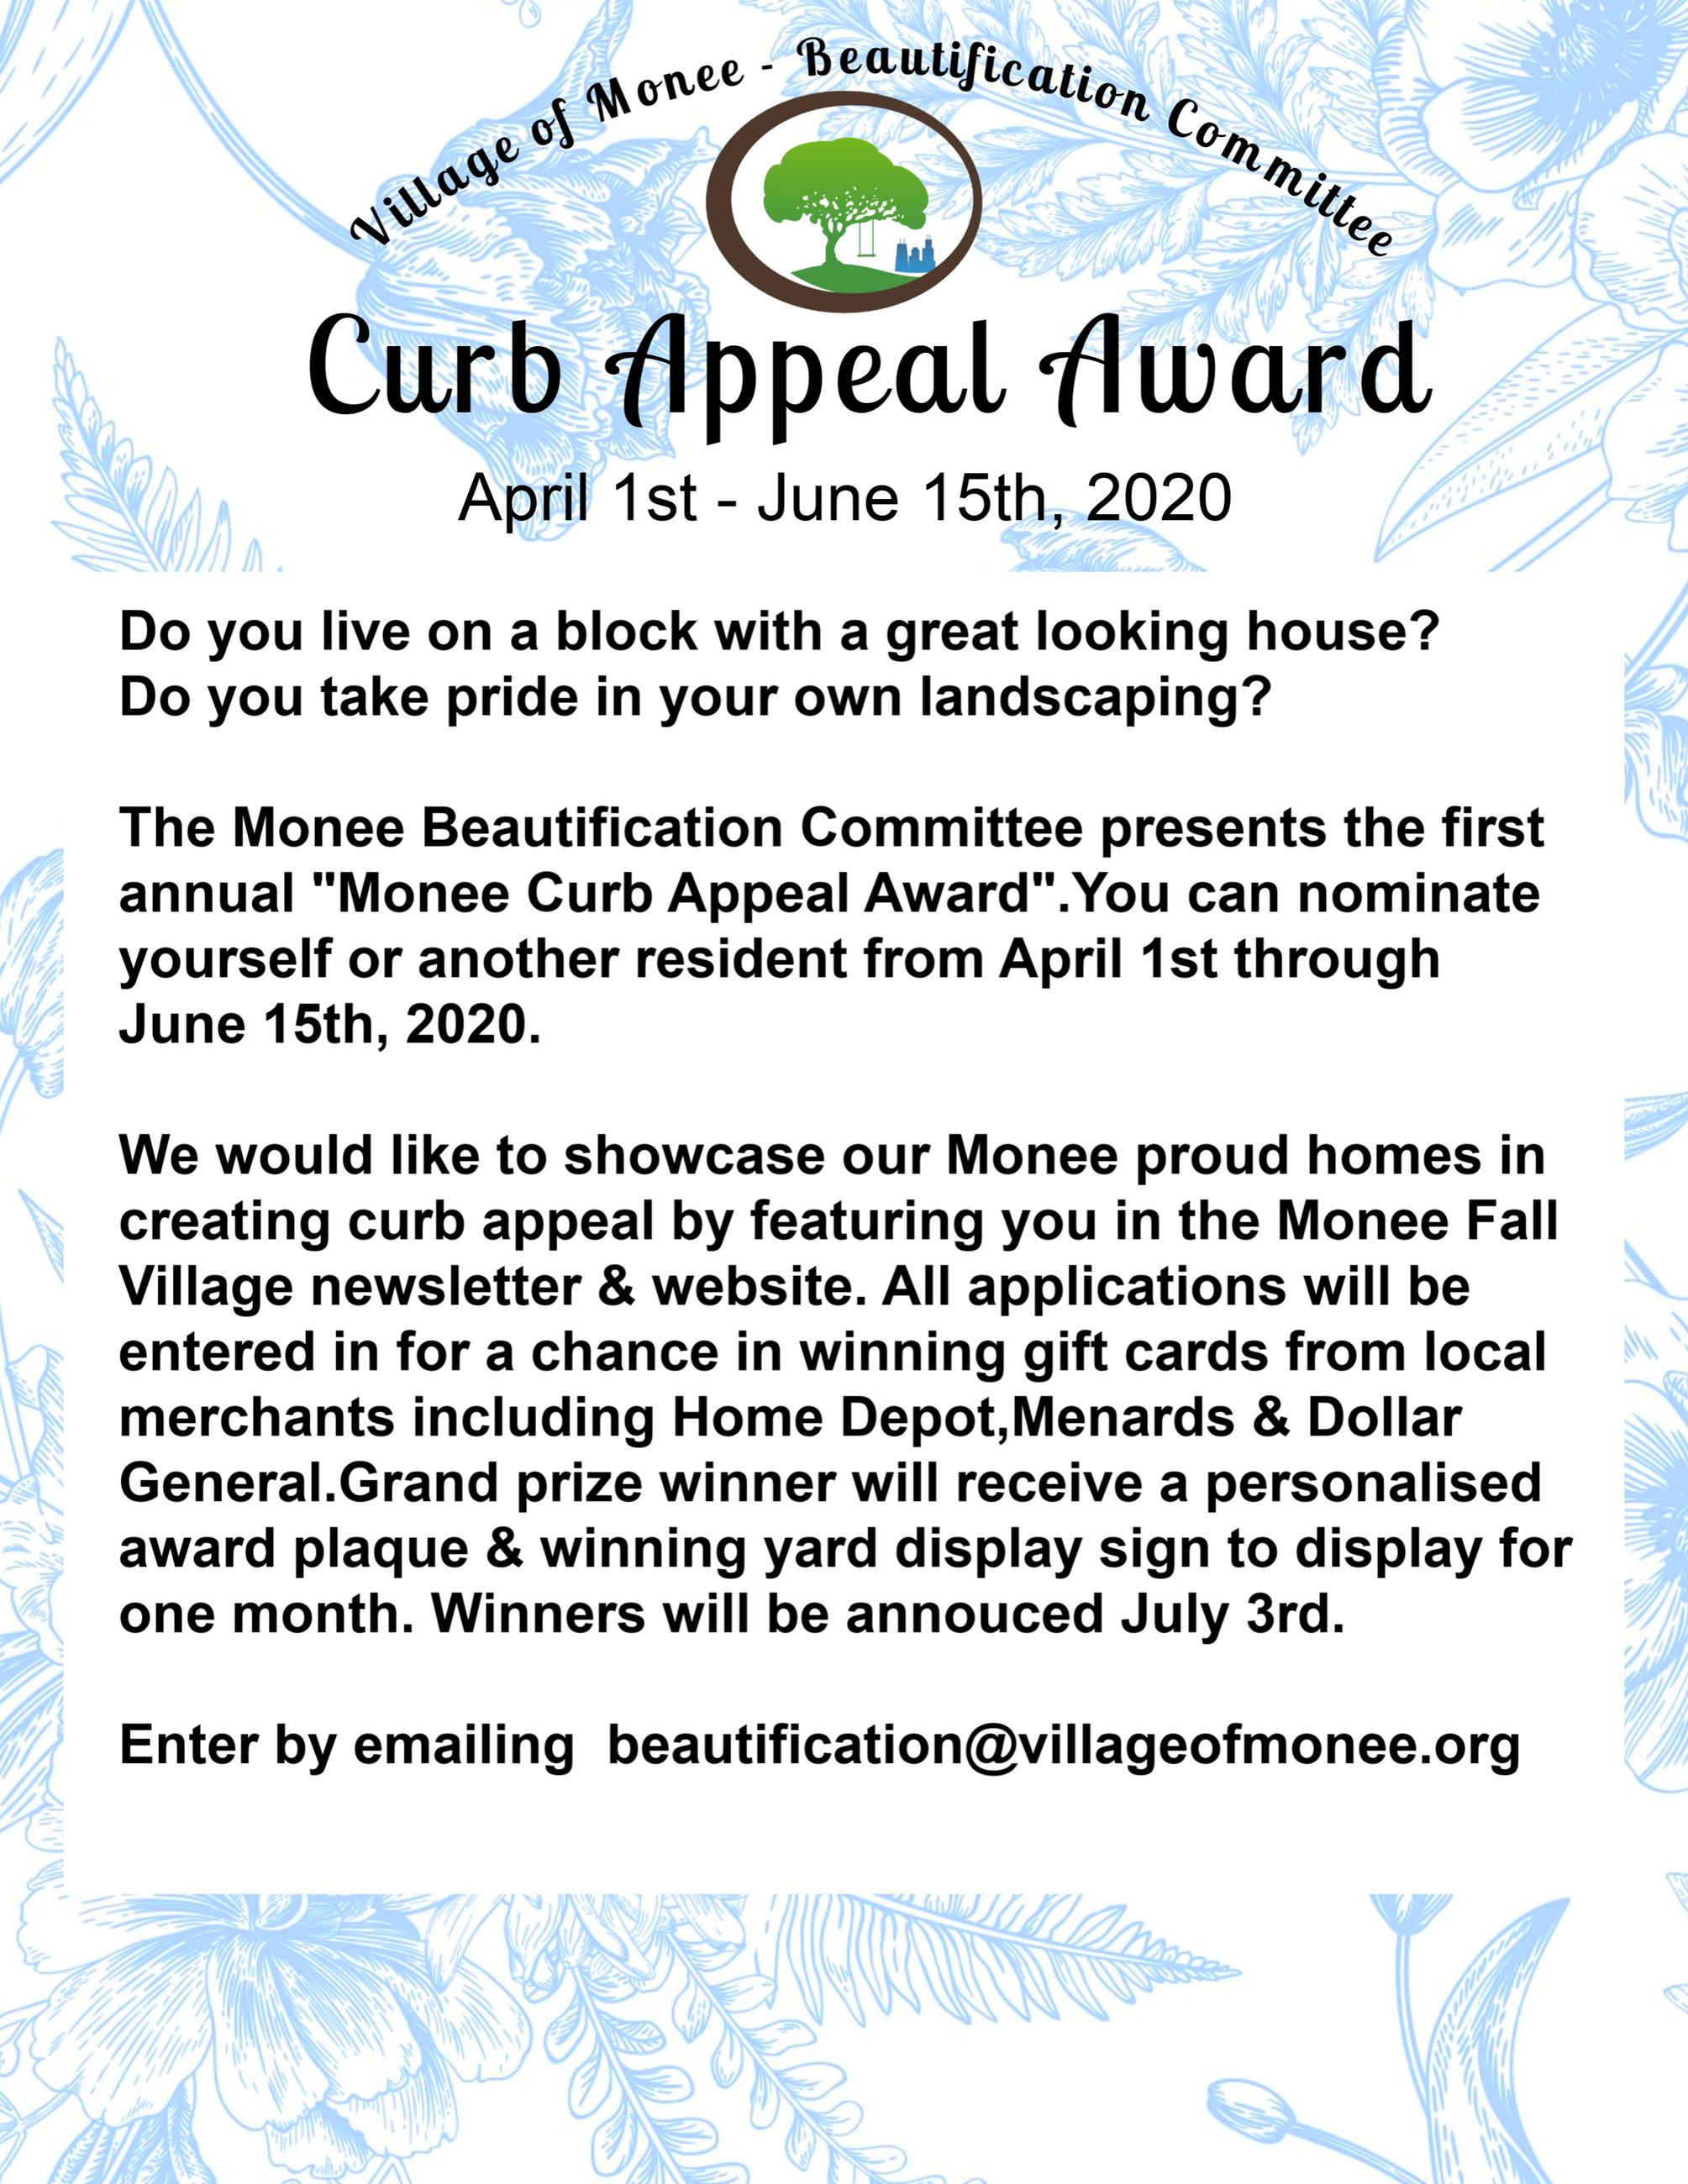 Curb Appeal Award 2020